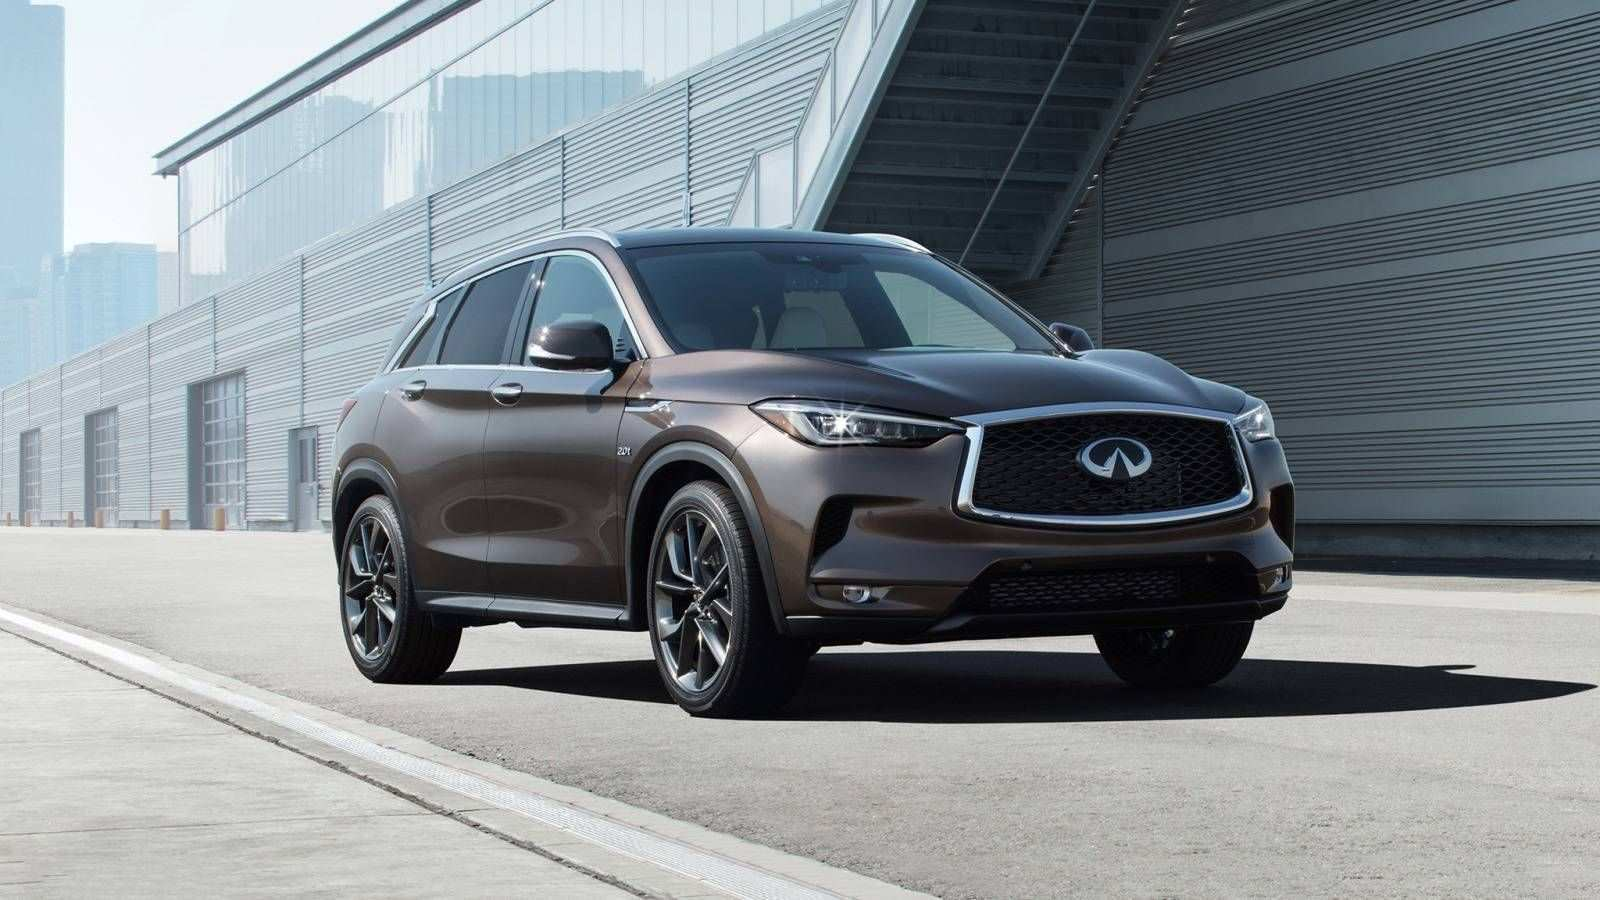 71 All New 2019 Infiniti Qx50 Weight Specs And Review